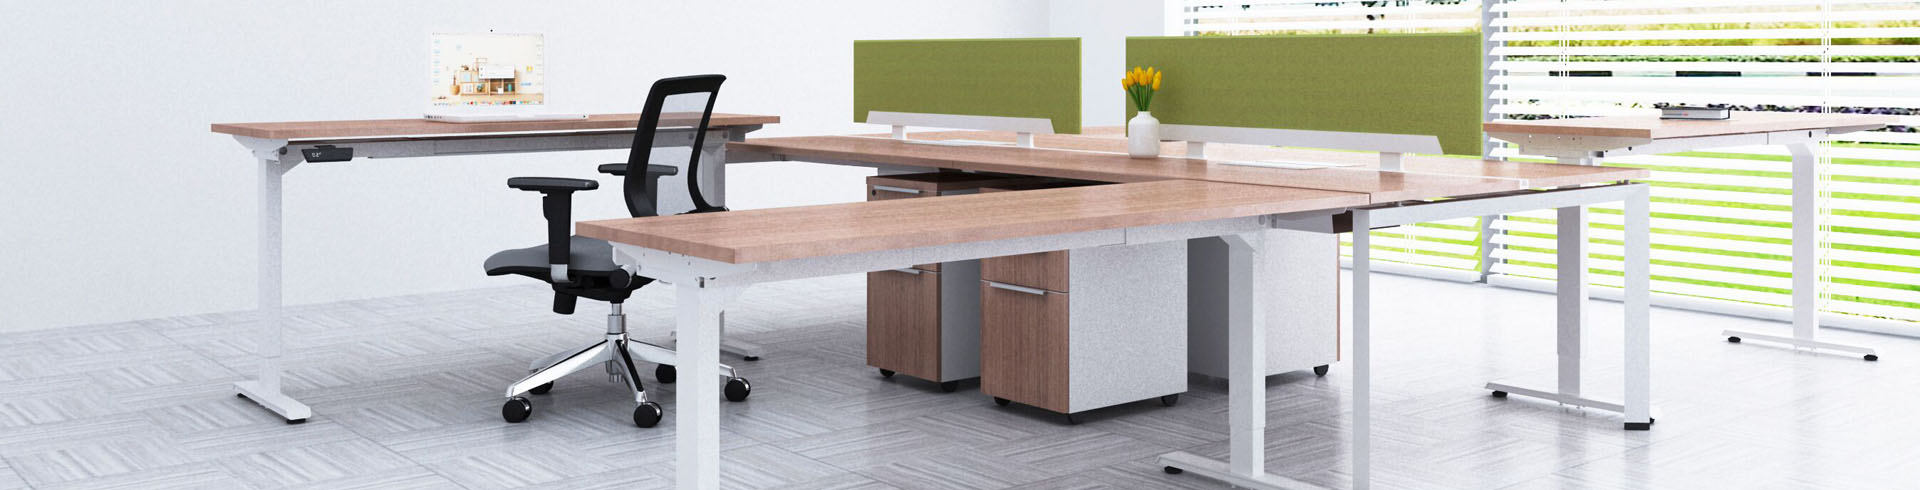 Everything For Offices | New U0026 Used Office Furniture In Denver And Aurora,  Colorado